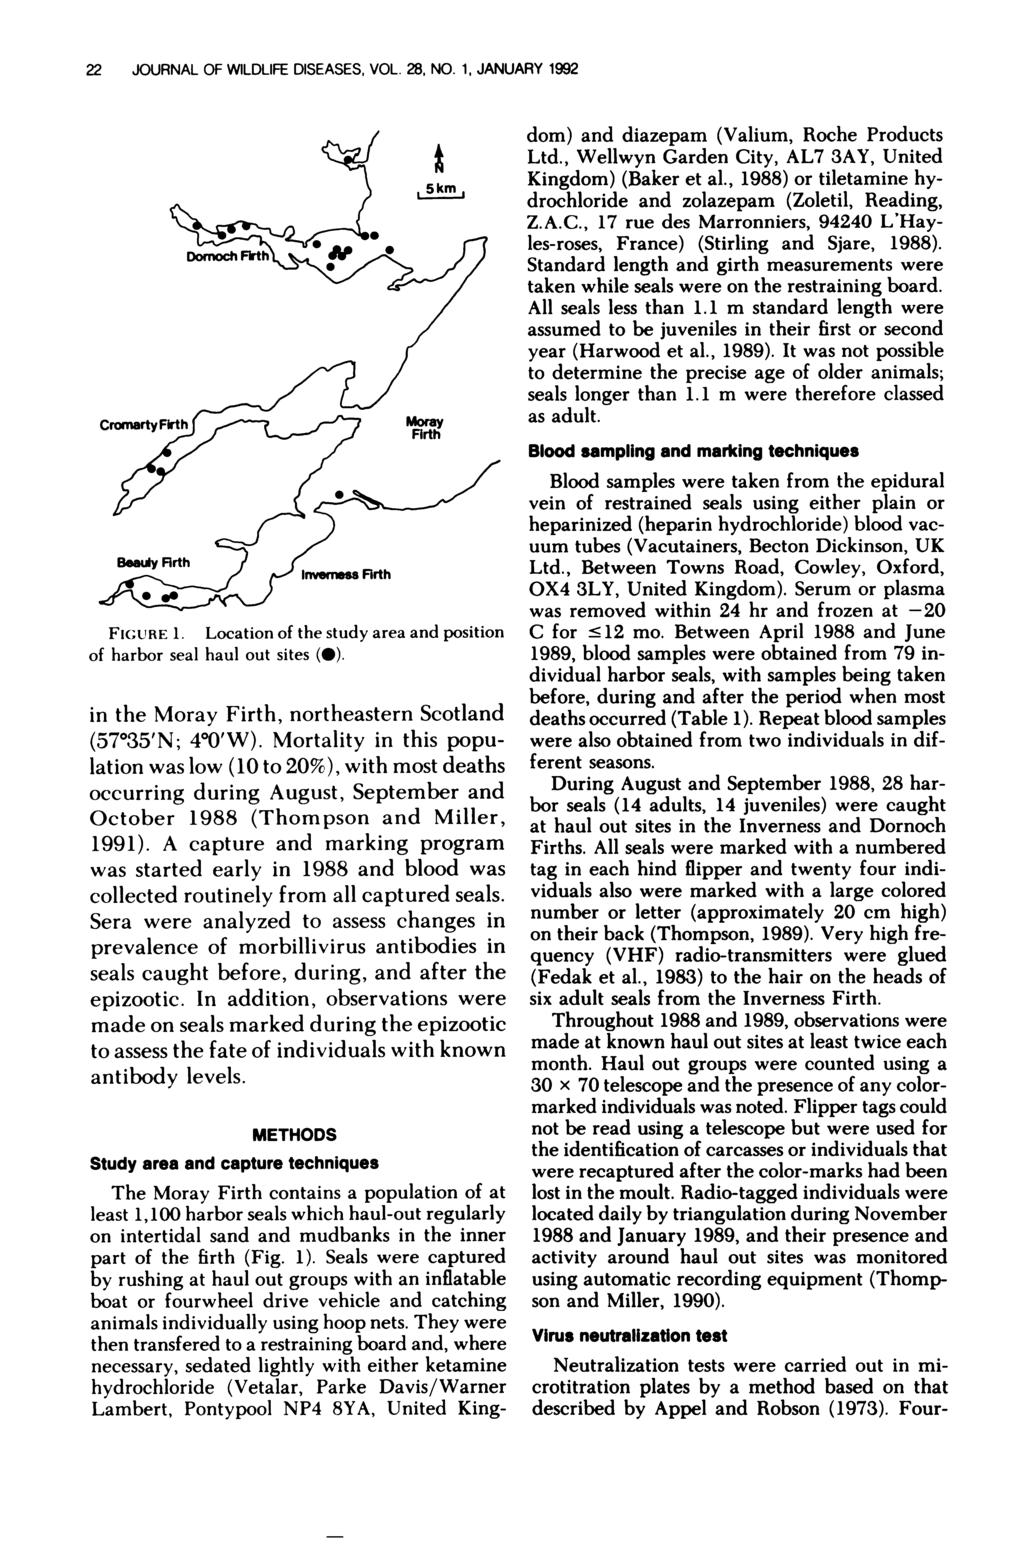 22 JOURNAL OF WILDLIFE DISEASES, VOL. 28, NO. 1, JANUARY 1992 Invenss Flrth LJ FIGURE 1. Location of the study area and position of harbor seal haul out sites (#{149}).